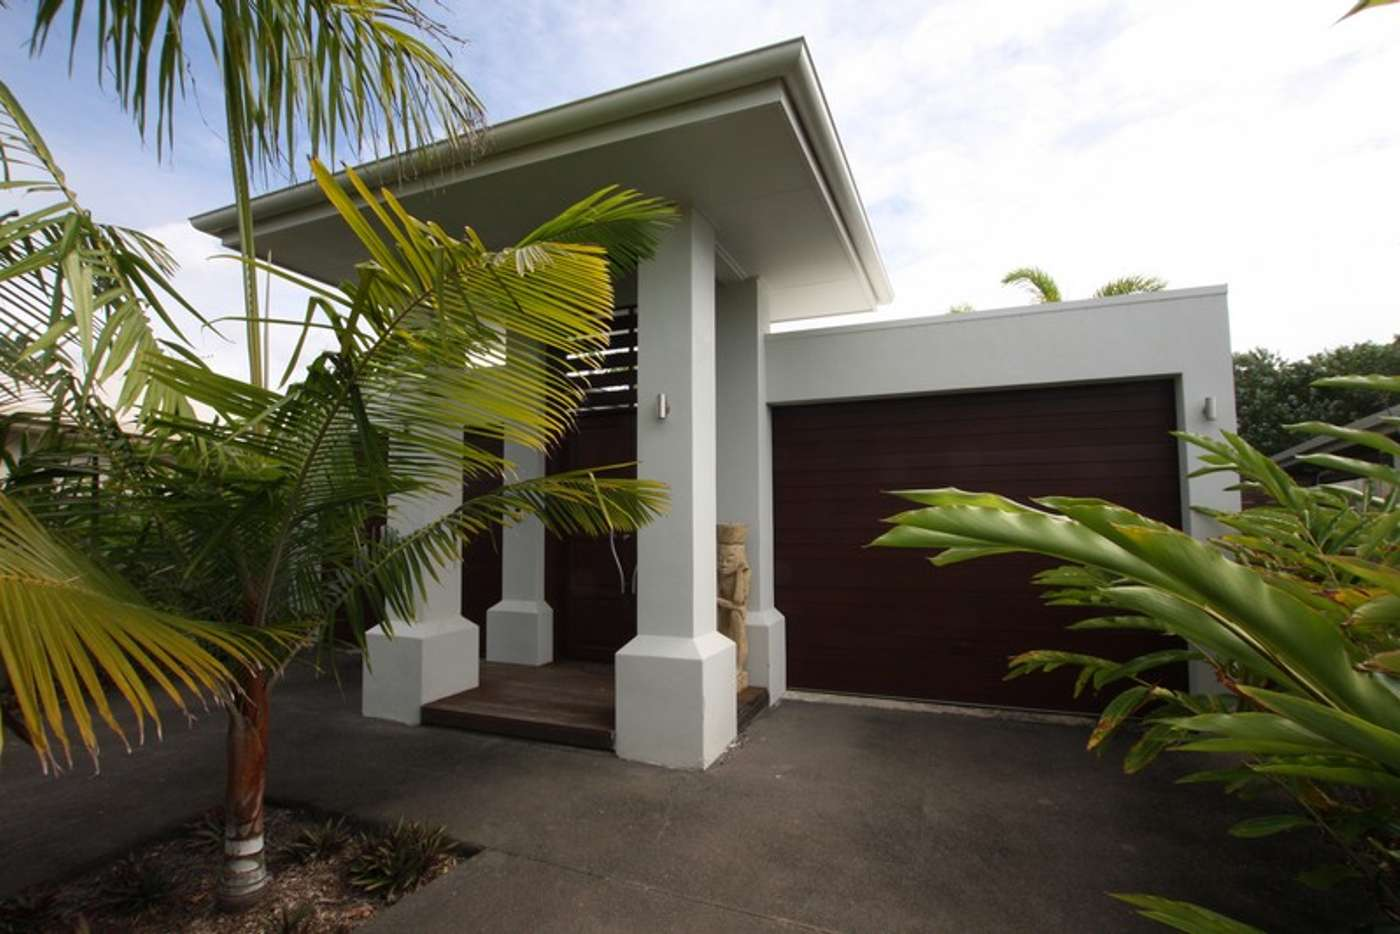 Main view of Homely house listing, 4 Jacana Close, Port Douglas QLD 4877